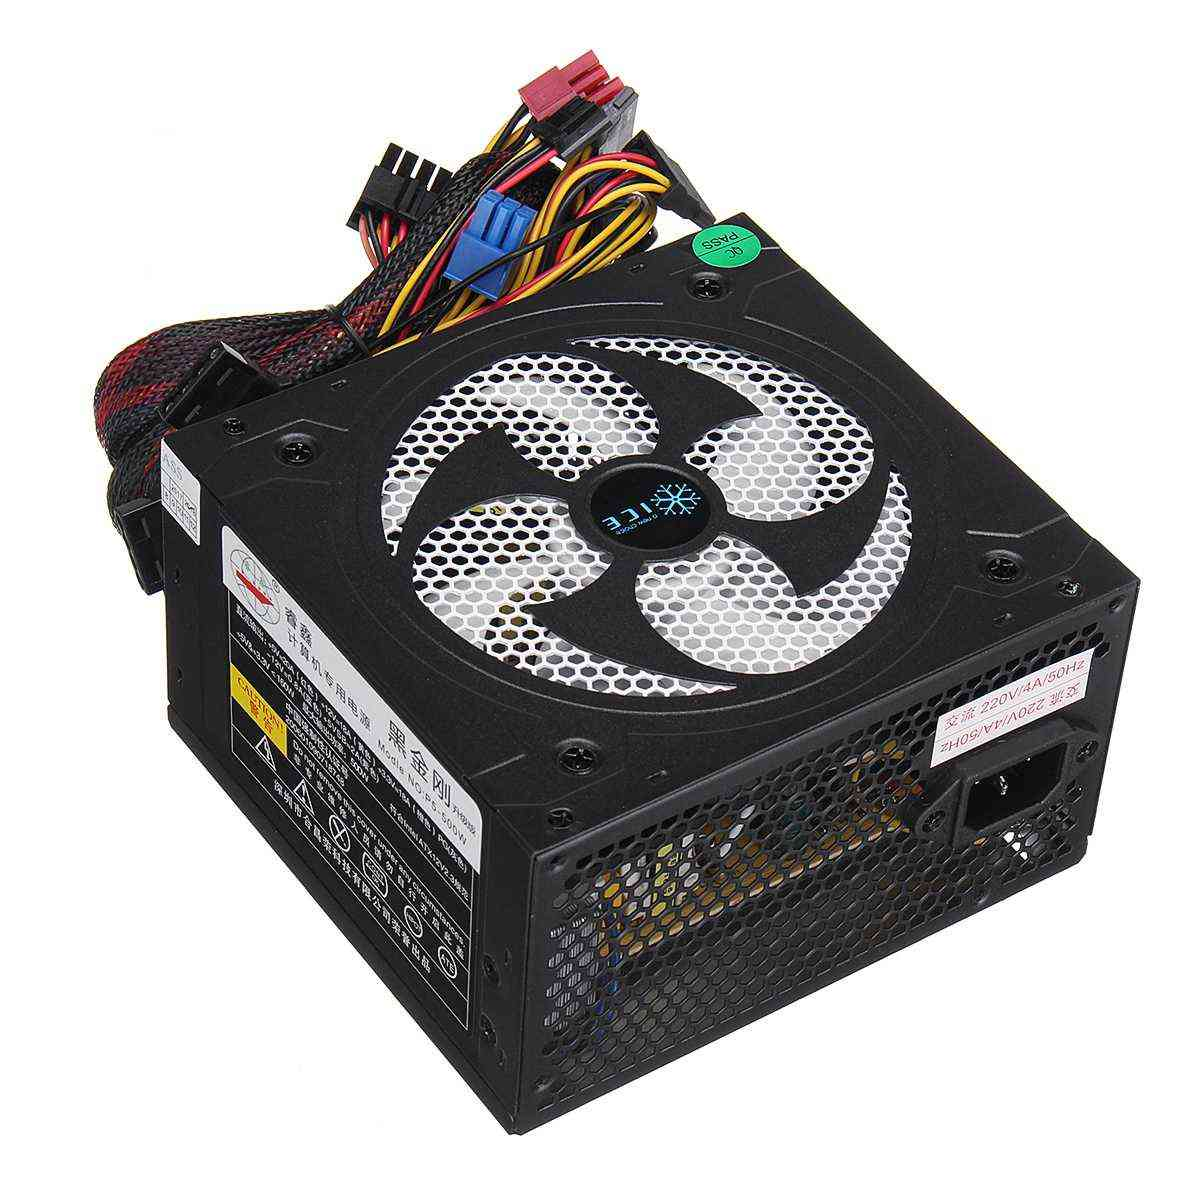 Quiet 500w Desktop Btc Minerv Pc Computer Power Supply With Sata 20pin+4pin For Miner Mining